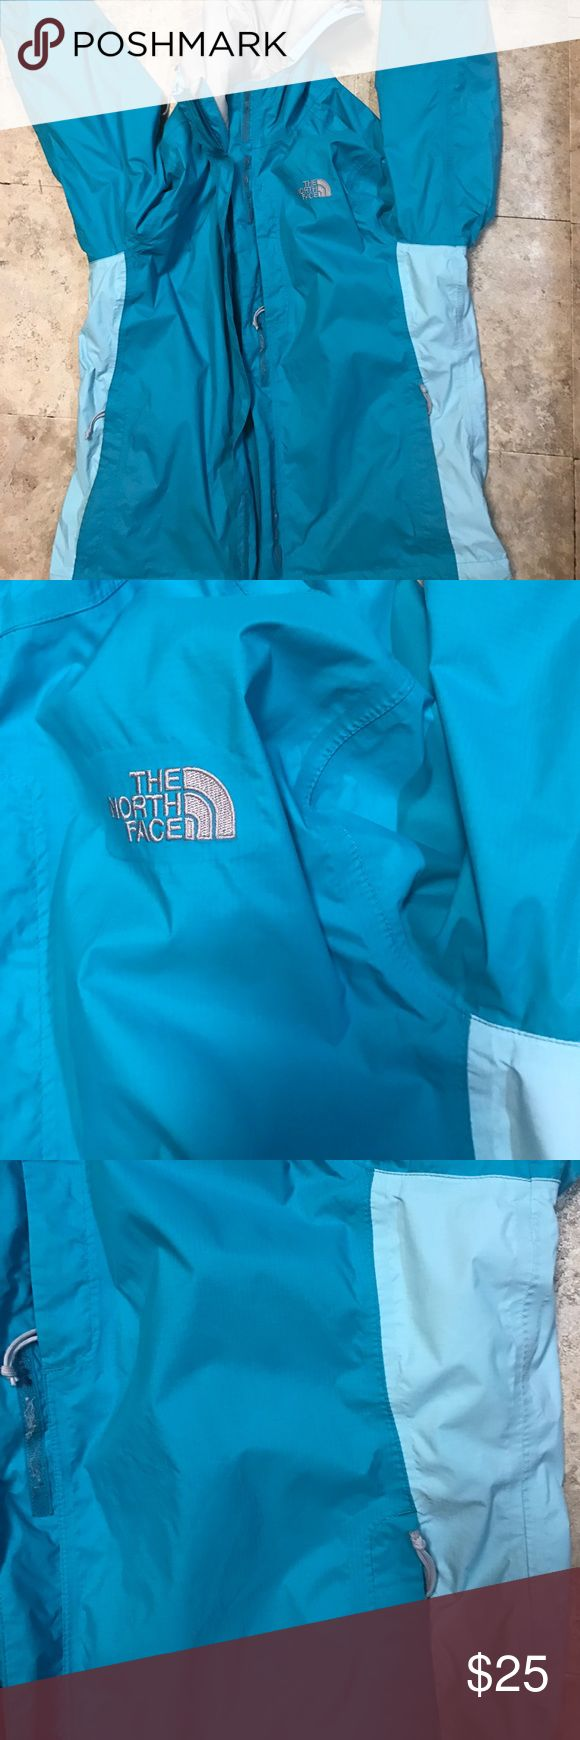 The North Face Women's Rain Coat I am selling my teal  blue women's The North Face Rain coat. Size L. I have had it for two years but I have taken great care of it. Only selling because I got a new one. Good used condition! The North Face Jackets & Coats